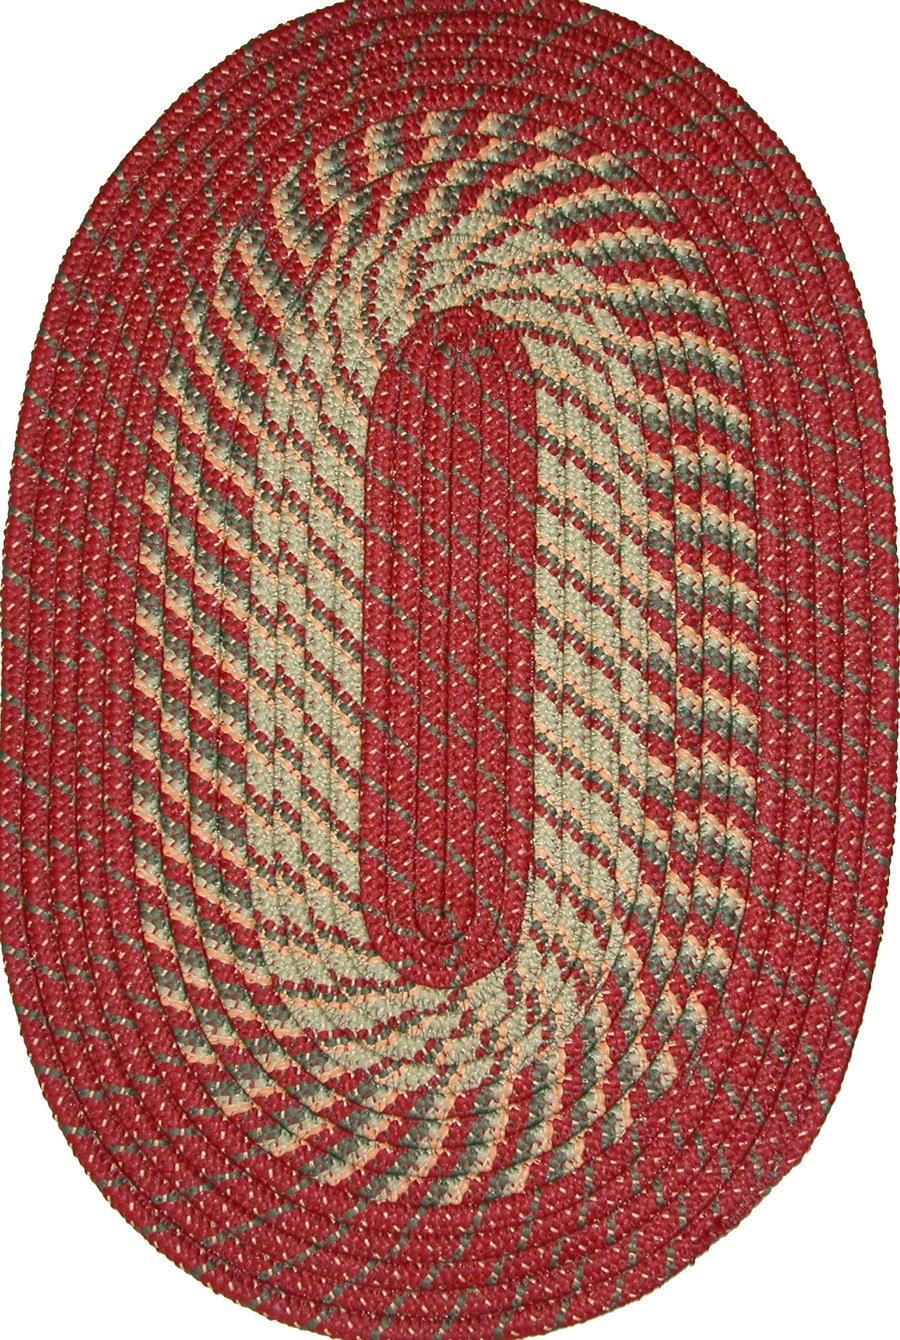 Constitution Rugs Plymouth 5 x 8 Braided Rug in Barn Red